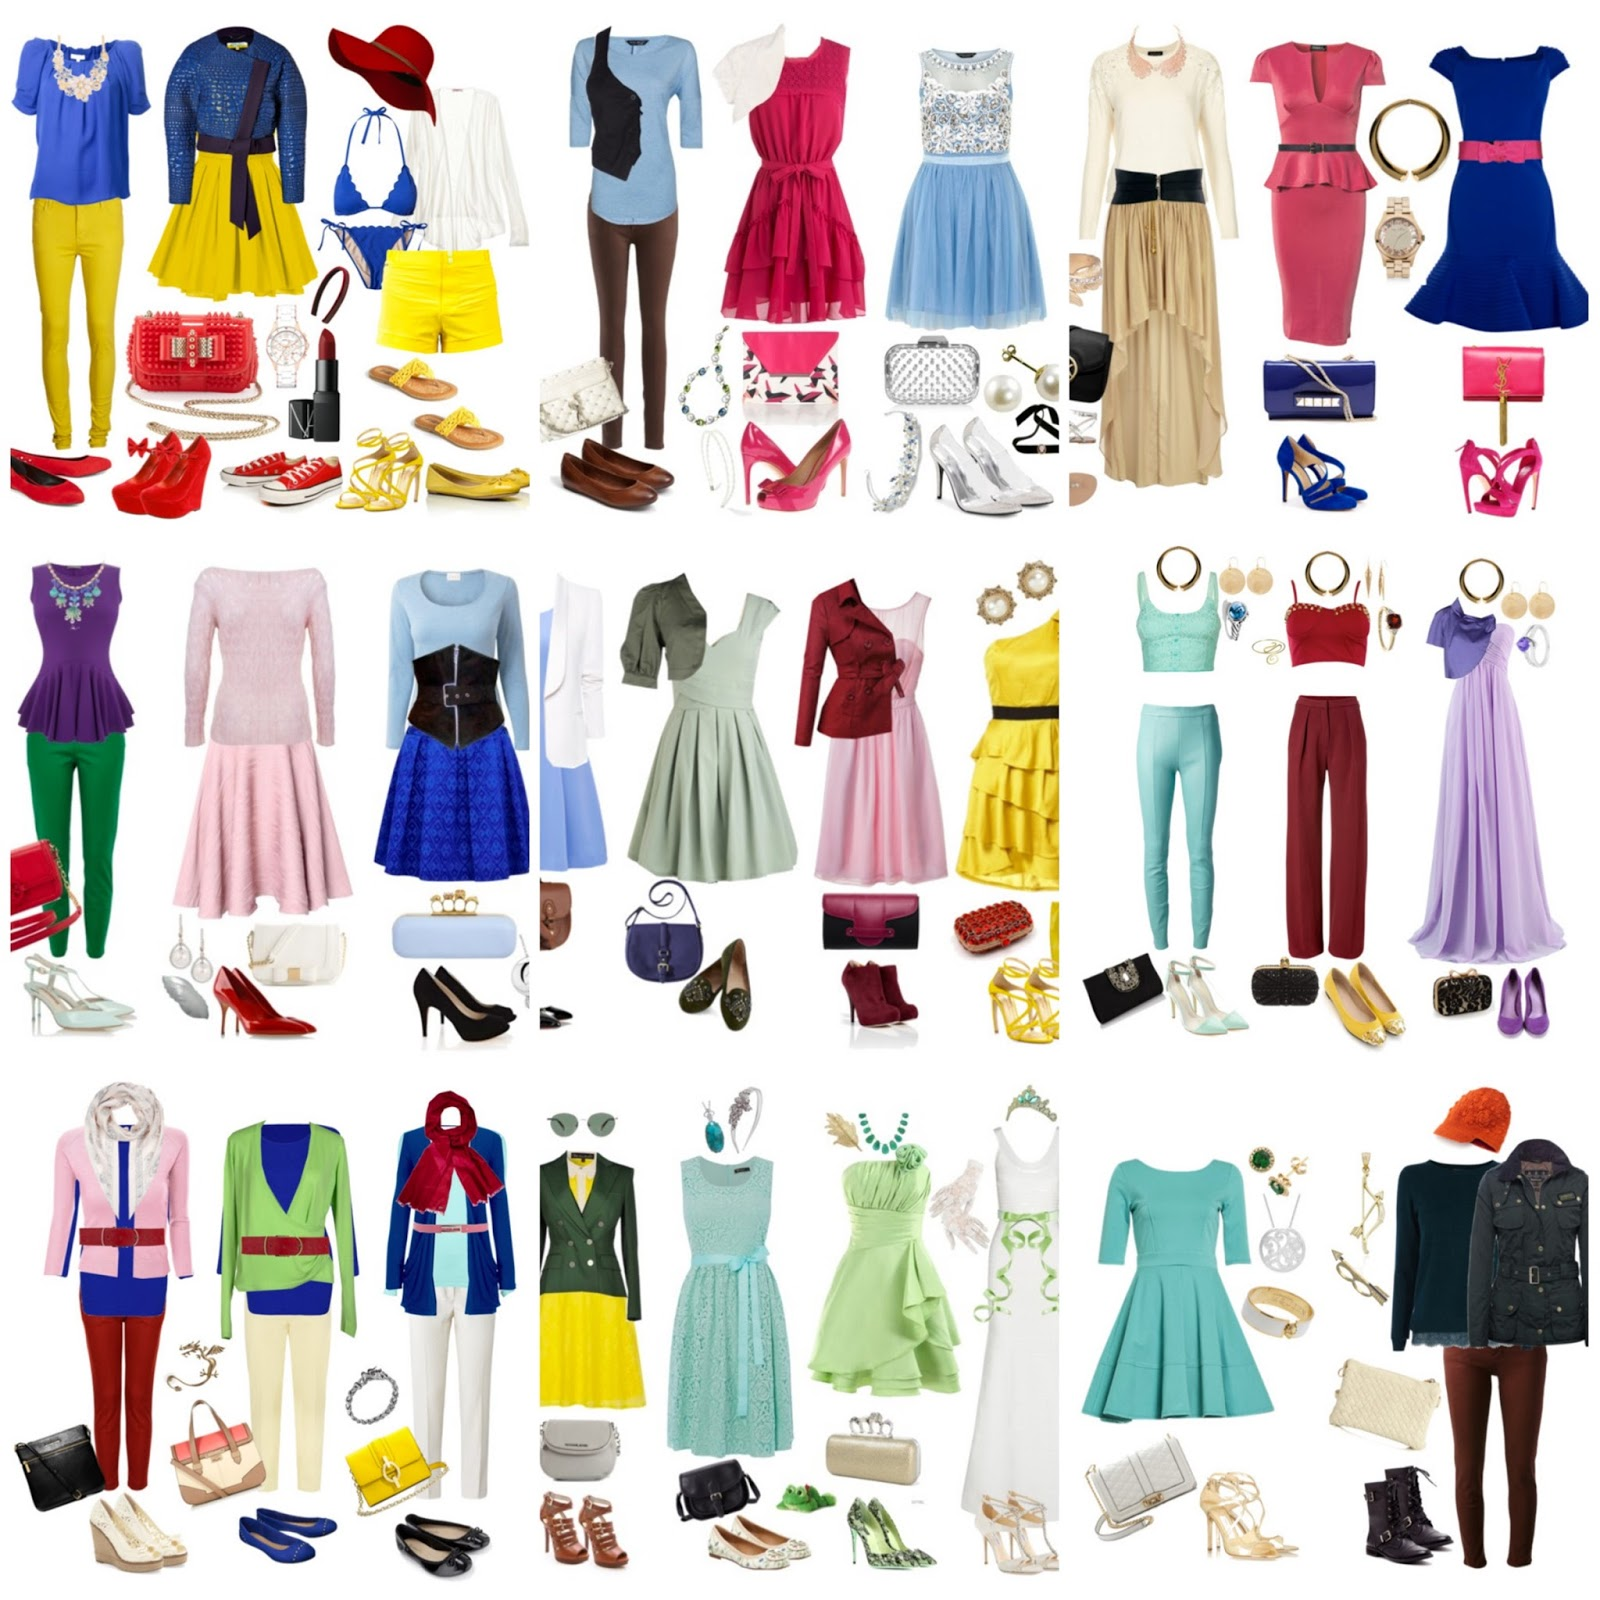 Disney Princess Fashion Series